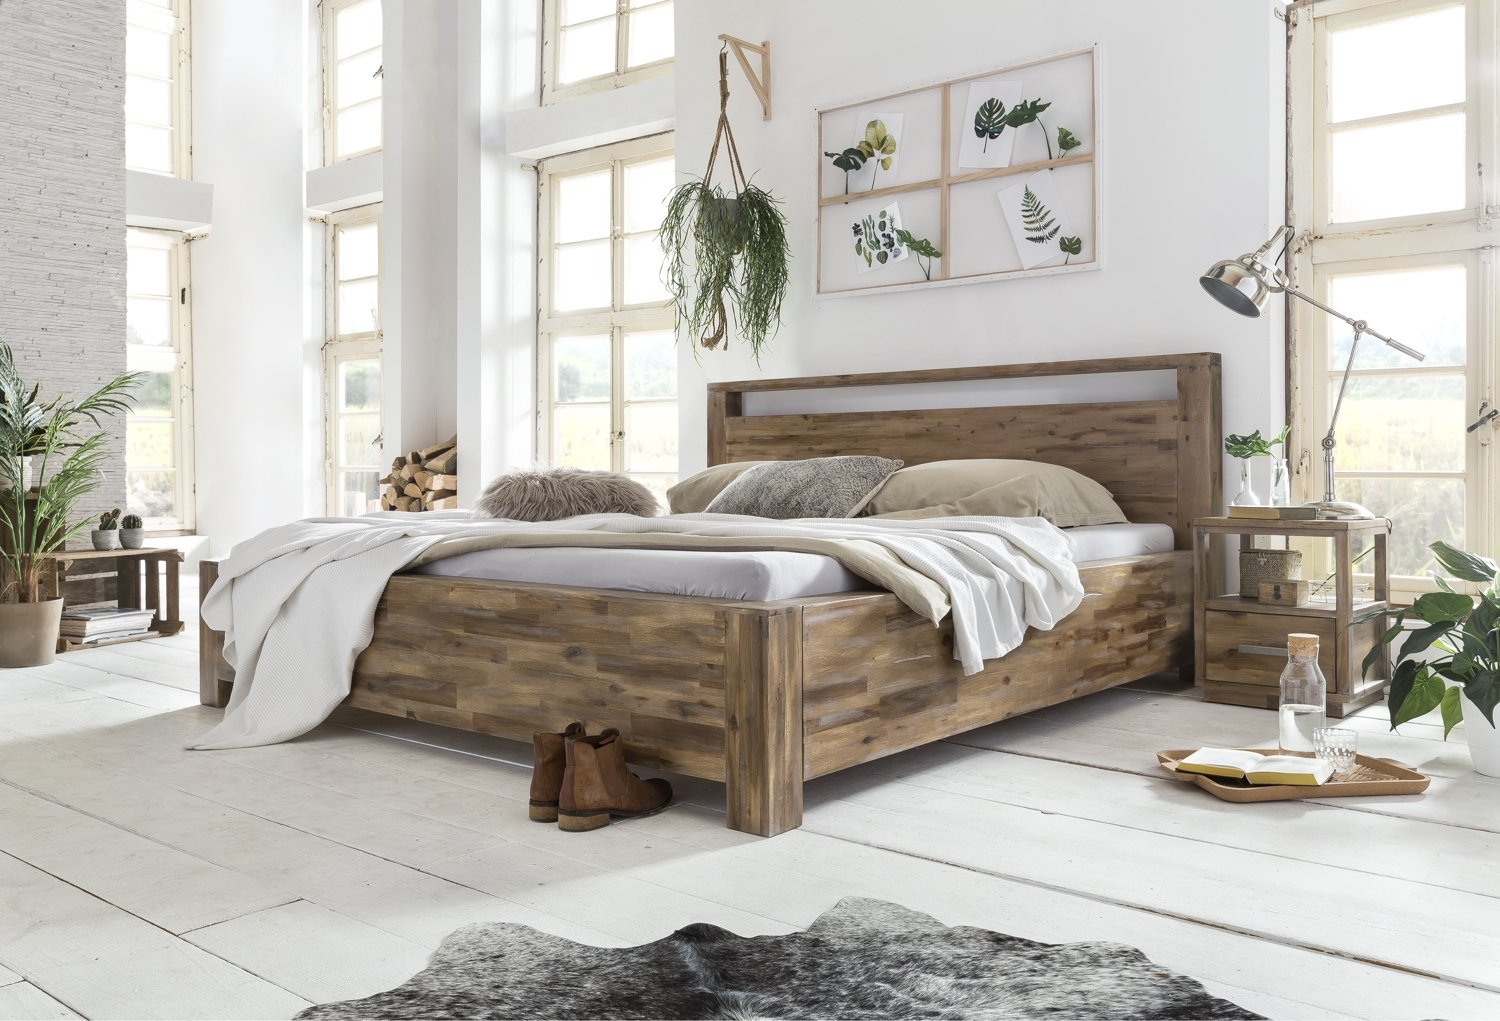 Woodkings Holz Bett 180x200 Havelock Doppelbett Akazie Rustic